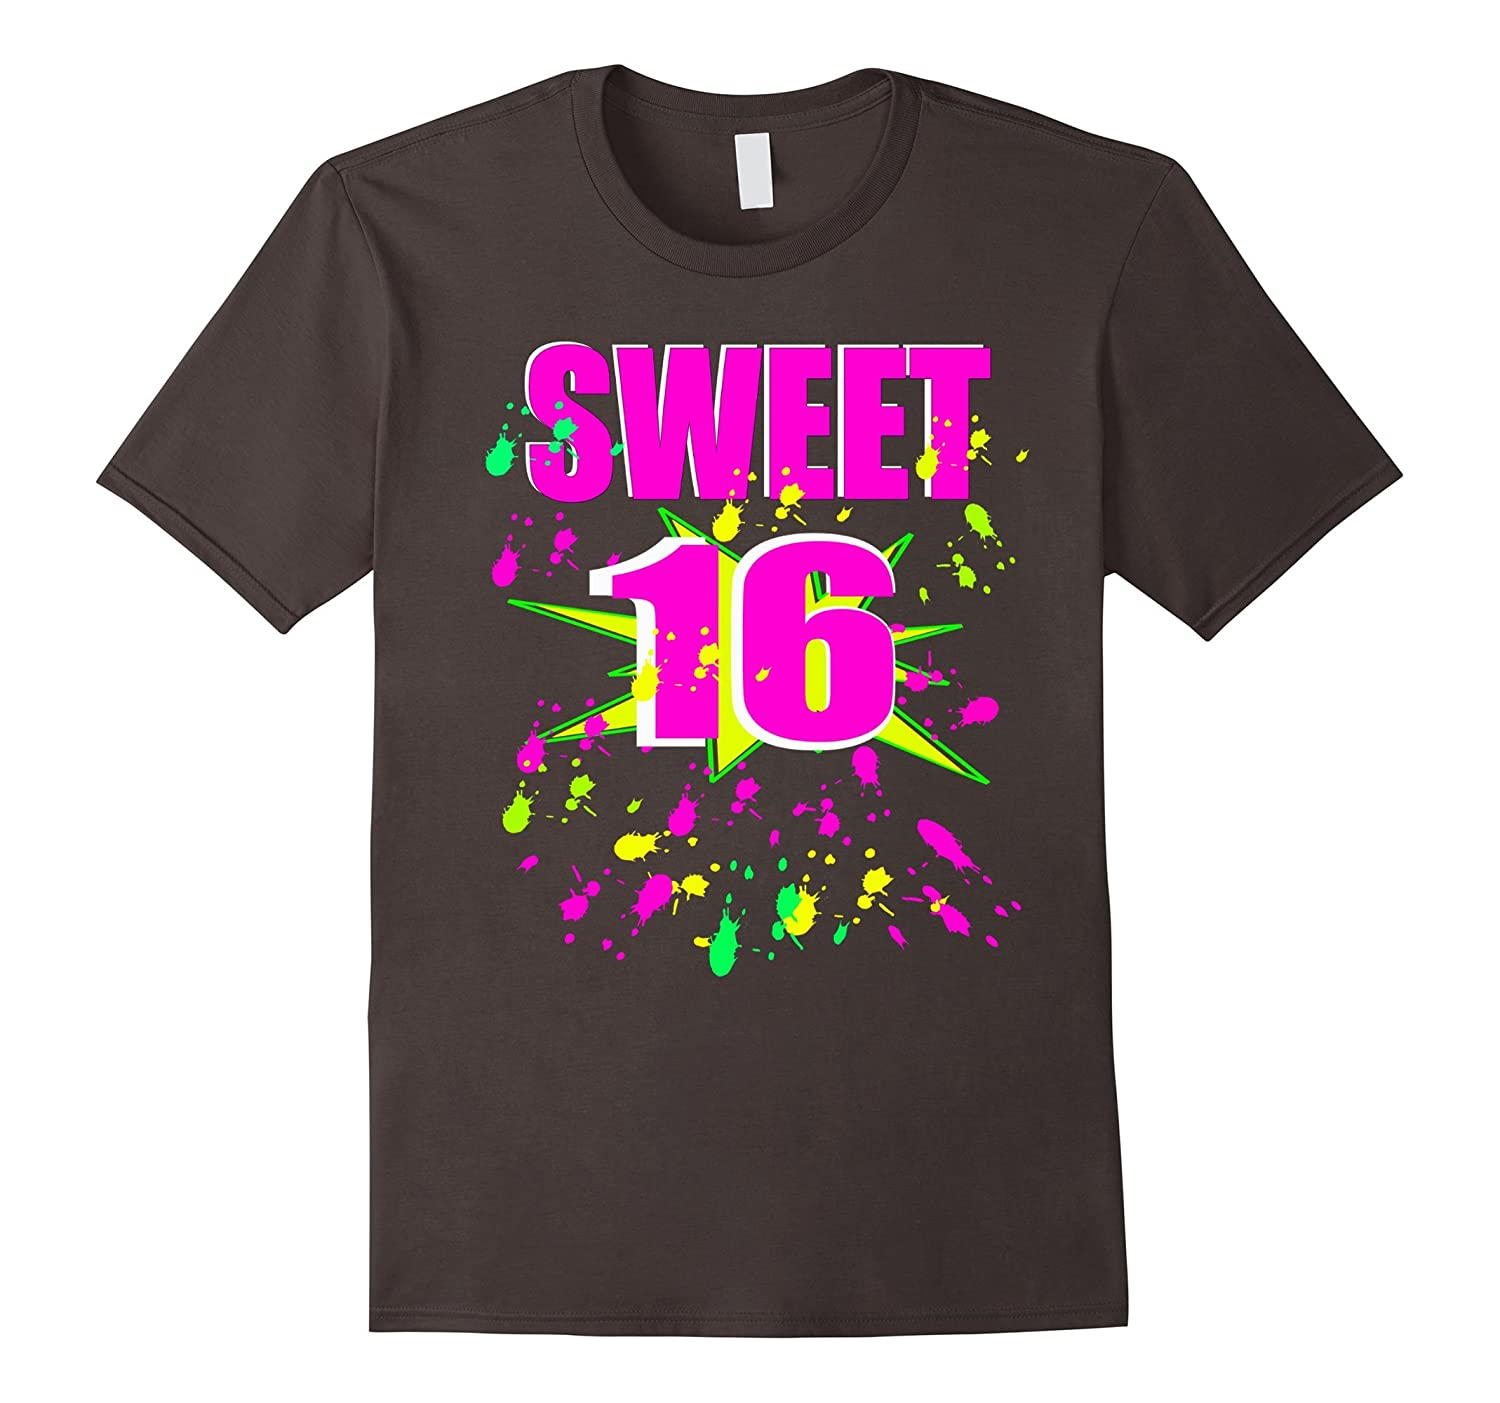 Sweet Sixteen 16 Birthday Shirt Neon Party Rave Glow RT